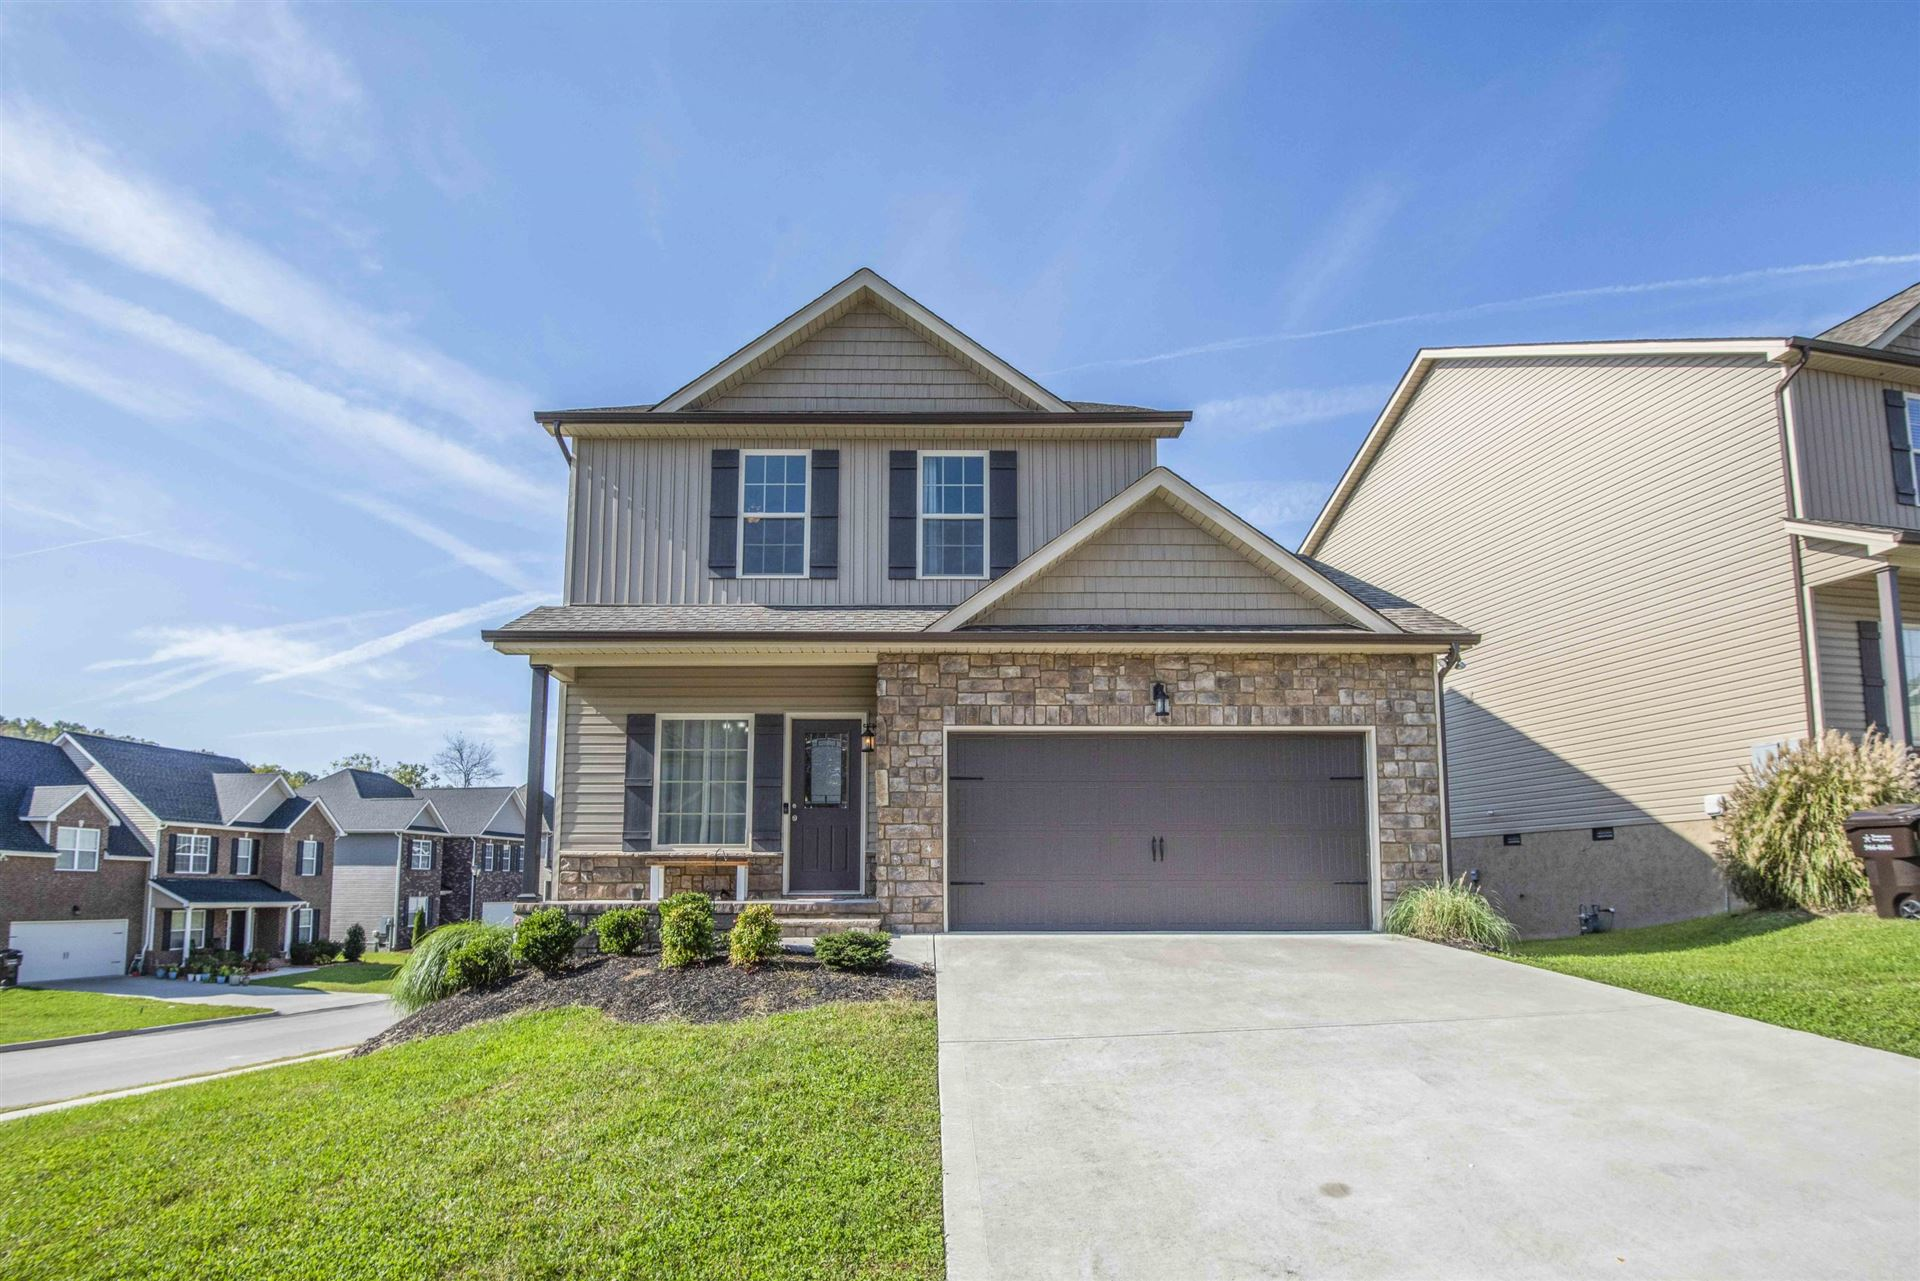 Photo of 1627 Silver Spur Lane, Knoxville, TN 37932 (MLS # 1133443)